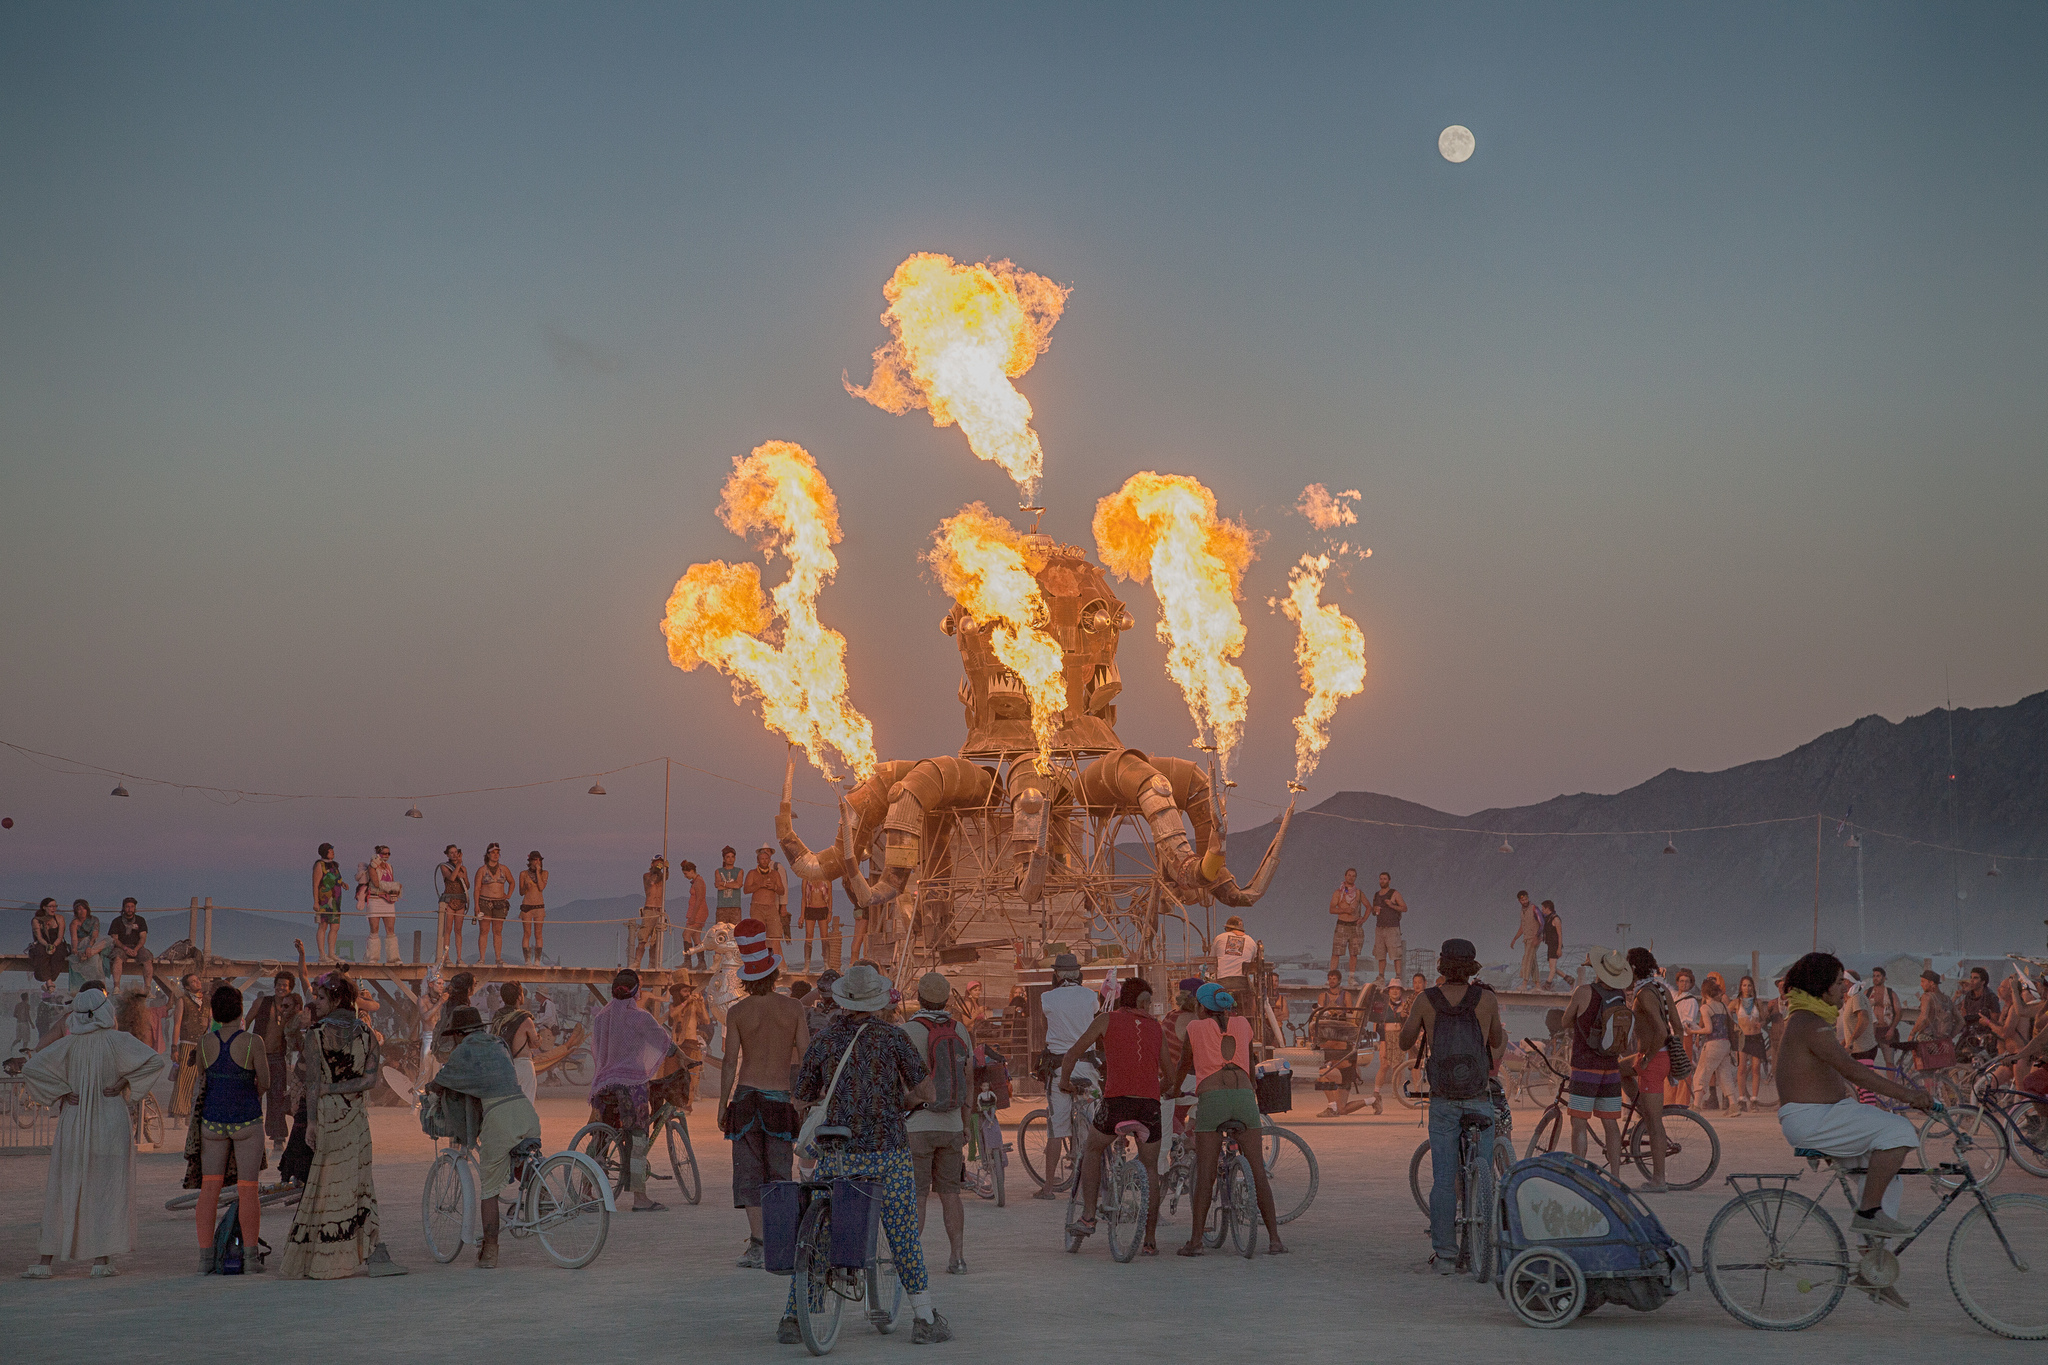 The History of the Burning Man Festival is an intriguing one